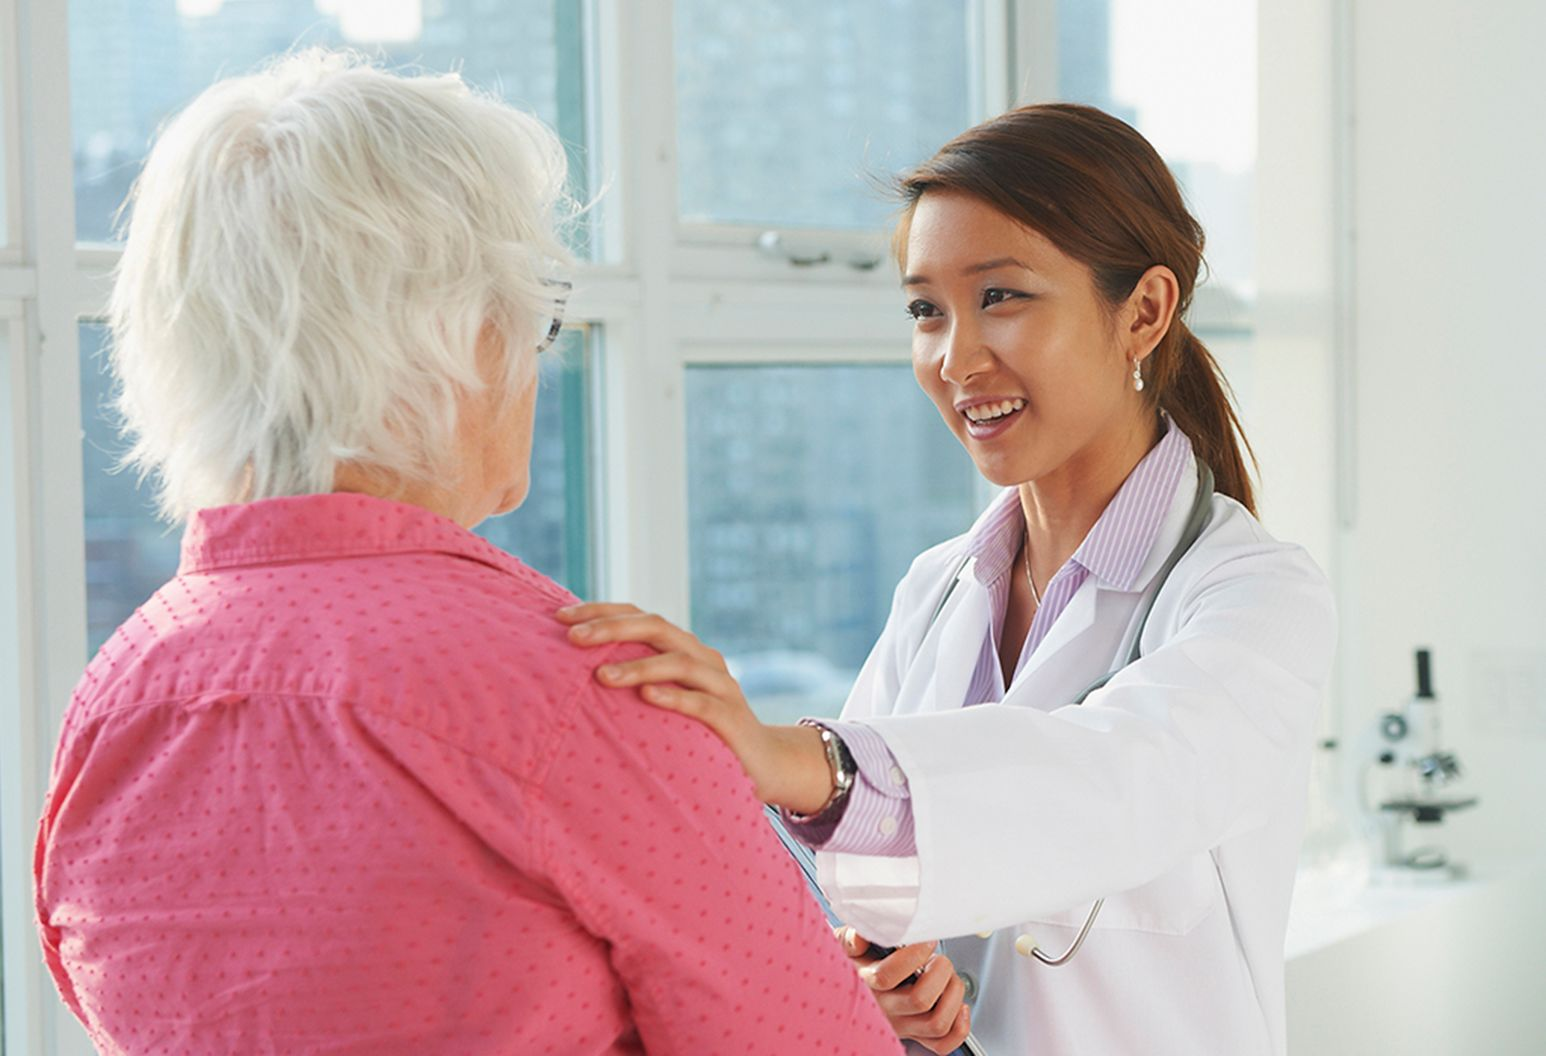 A female doctor and an elderly female patient are having a compassionate discussion.